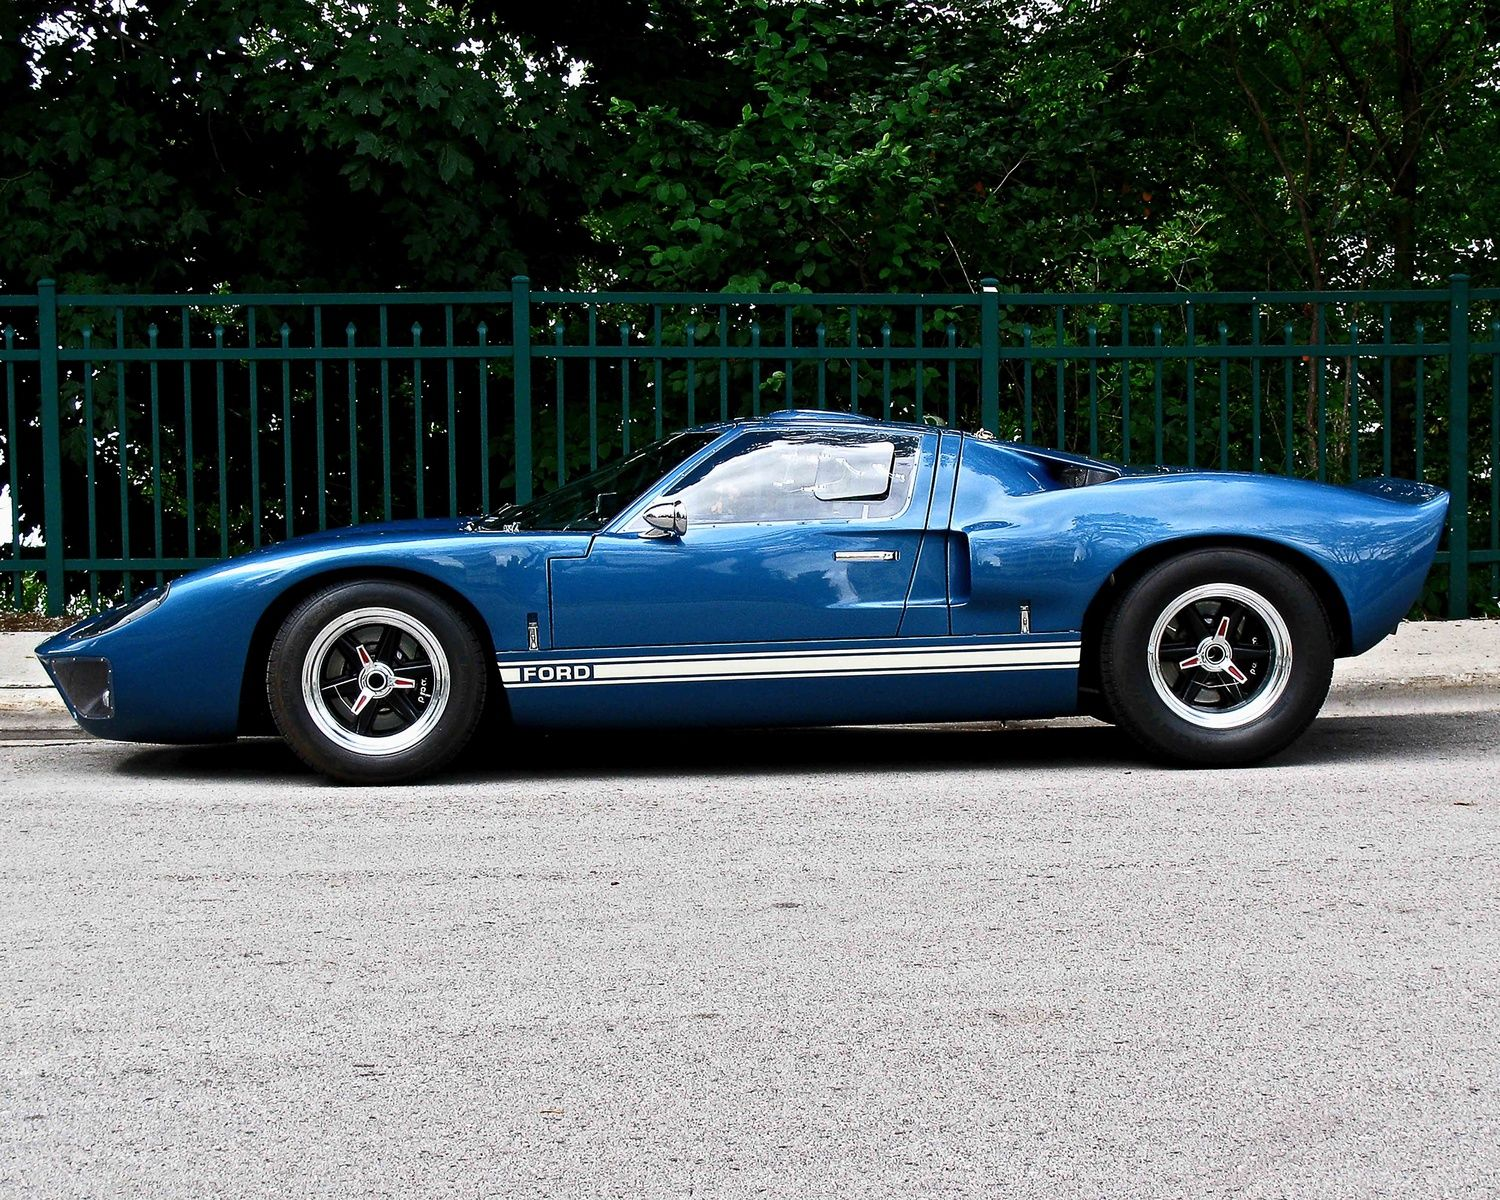 1965 Ford Gt40 This Car Absolutely Dominated Racing In It S Day Ford Almost Purchased Ferrarri In The Late Sixties But Fe Ford Gt40 Ford Classic Cars Ford Gt